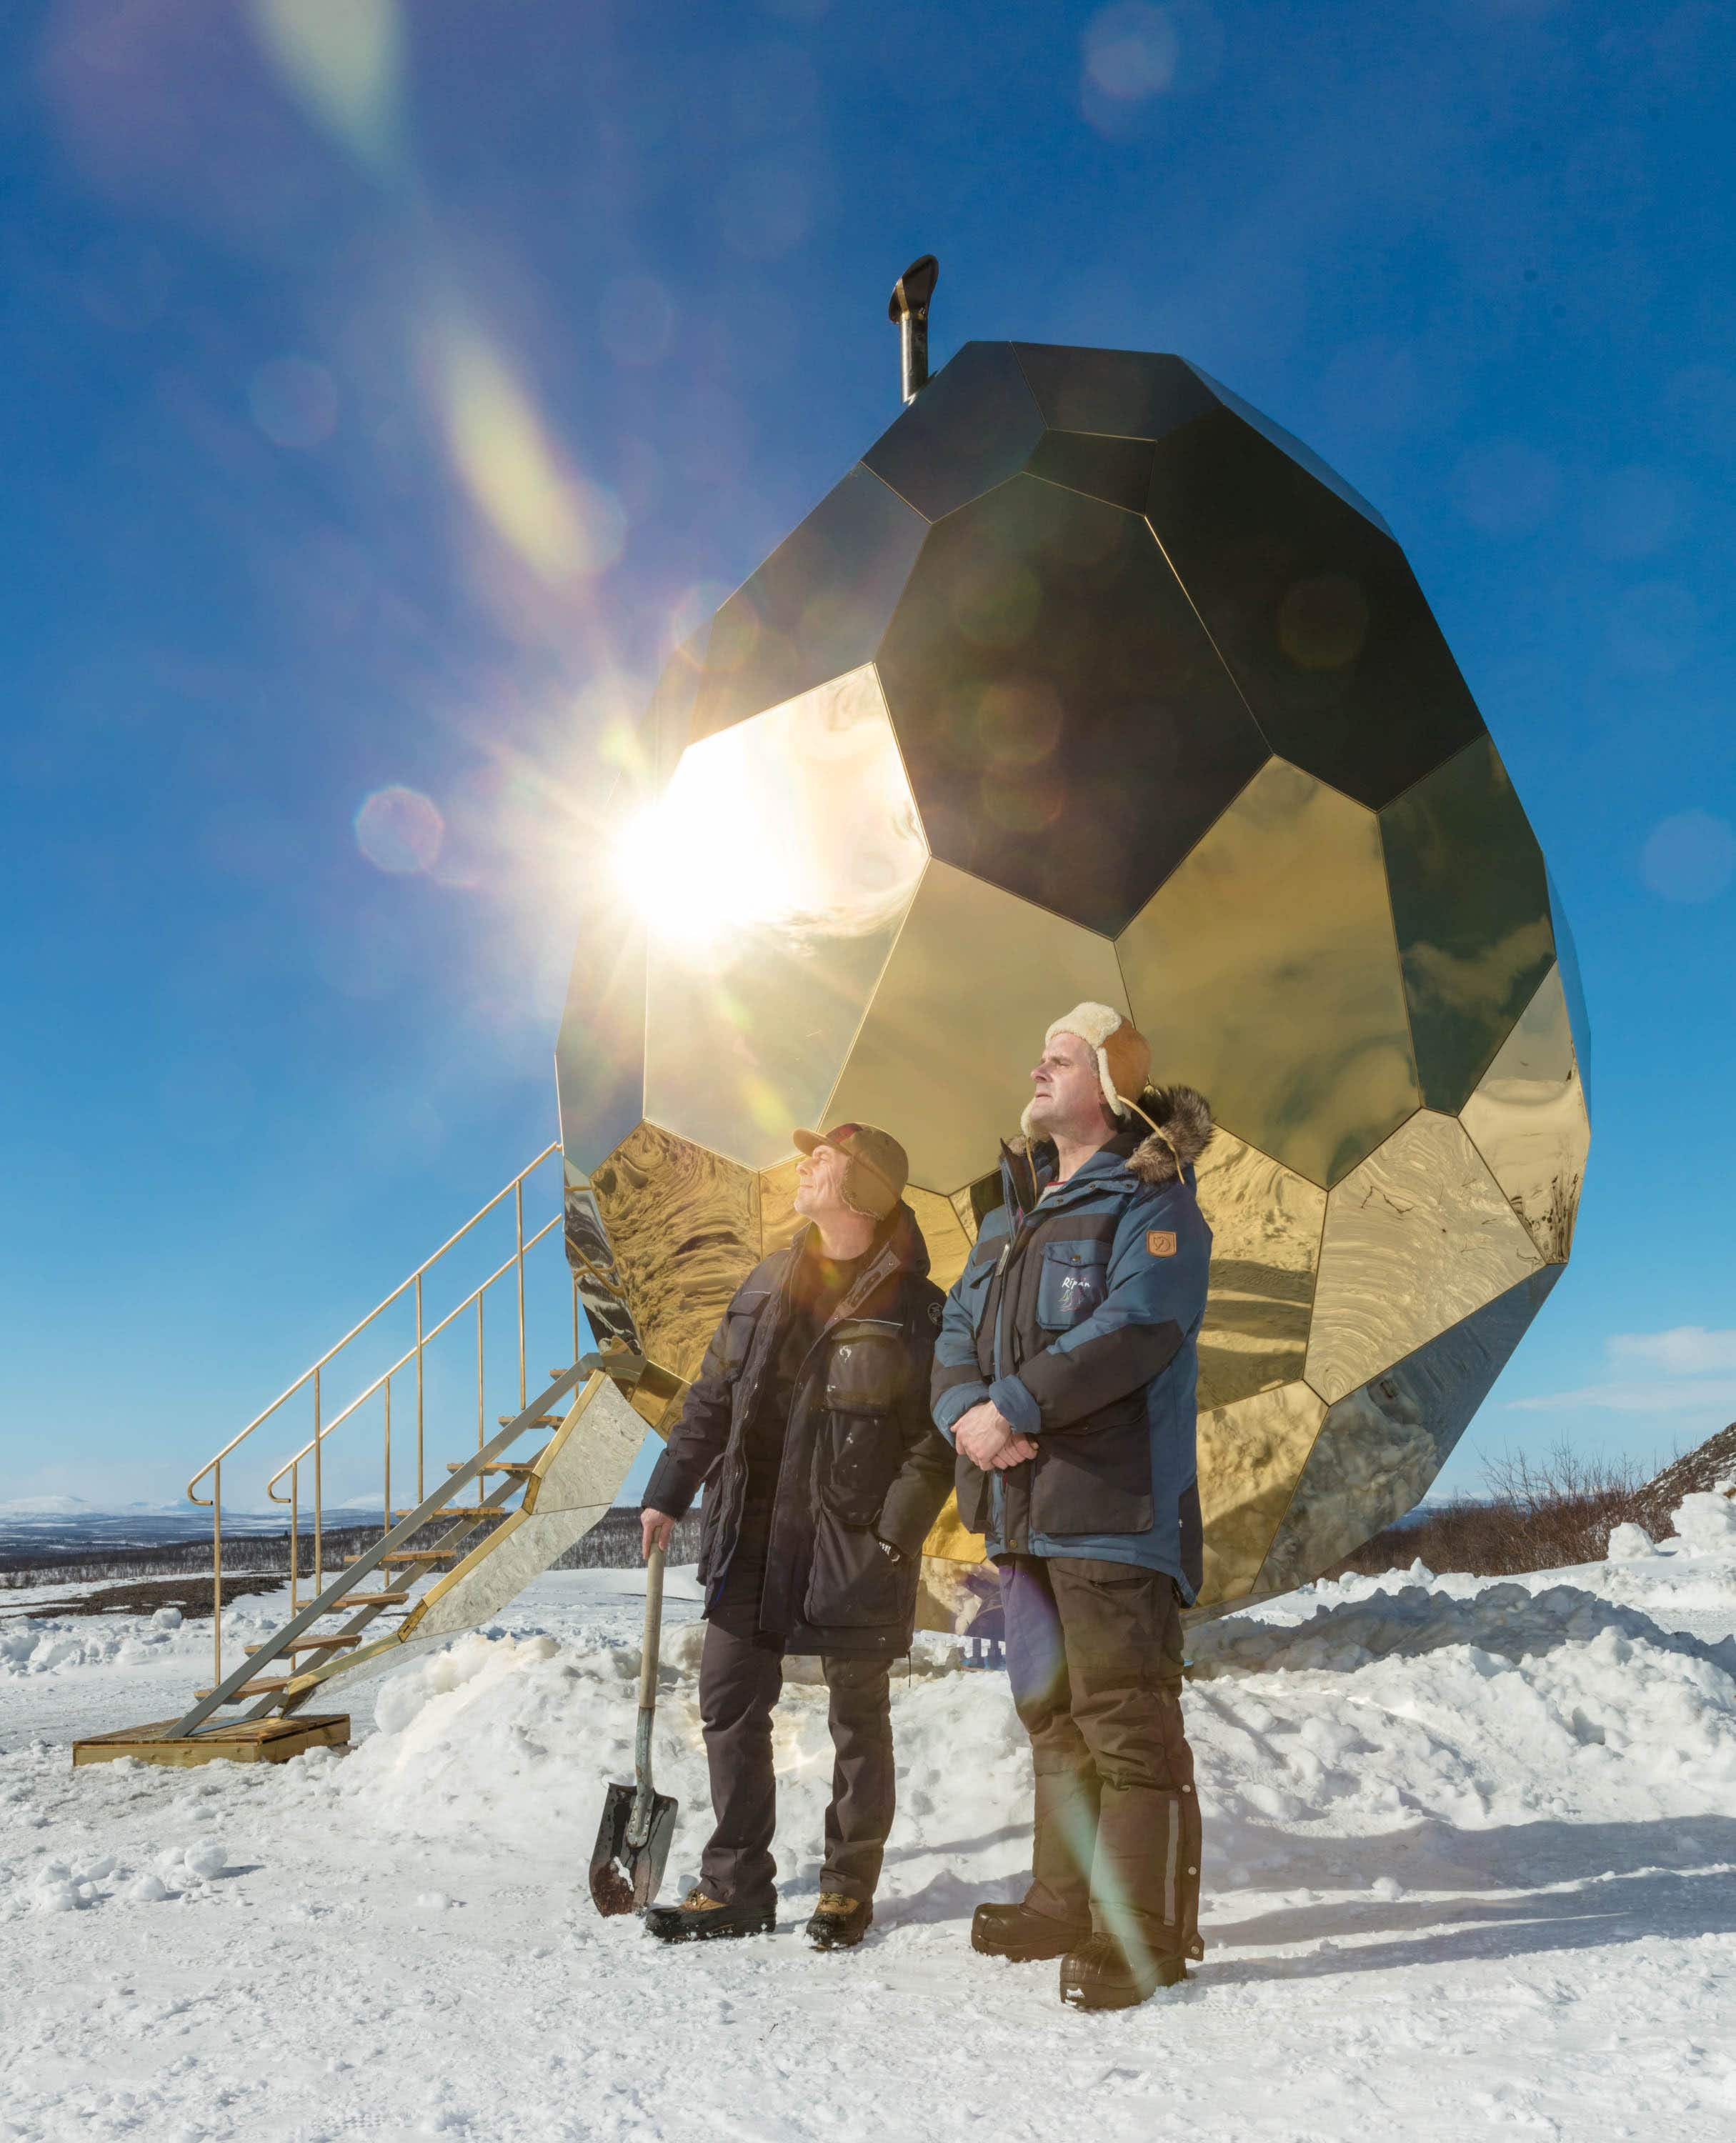 This golden egg-shaped sauna is attracting lots of attention in Sweden